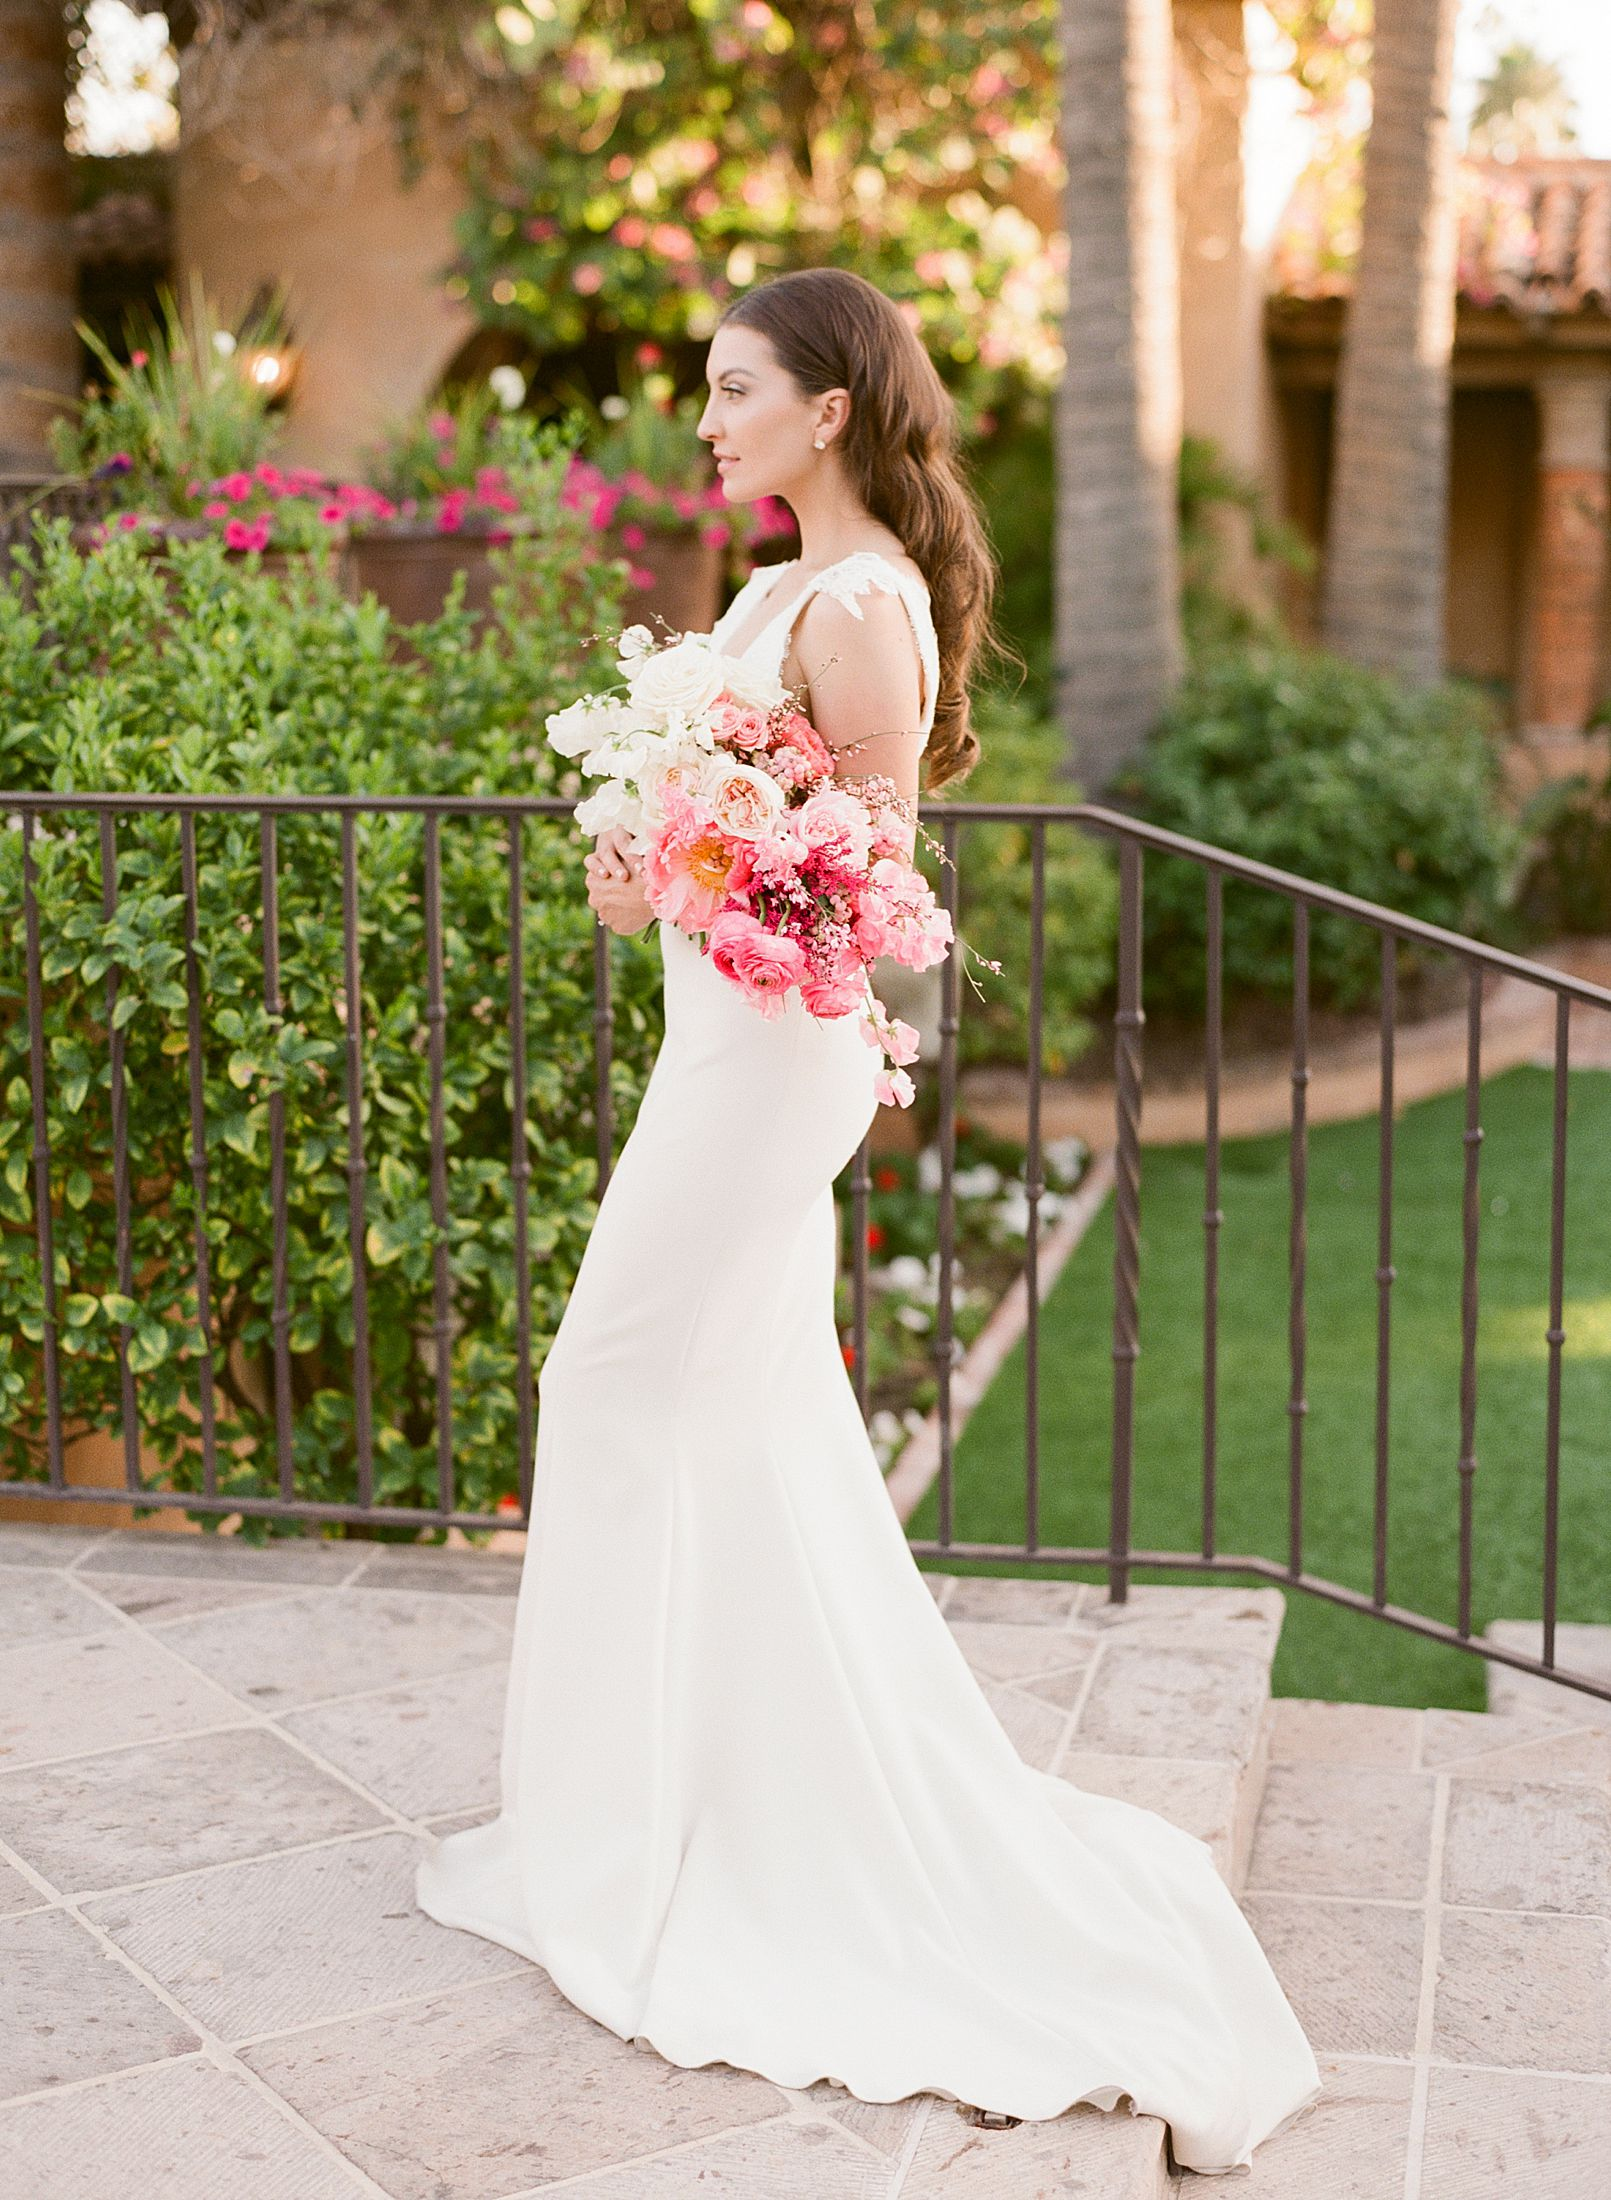 Pink Ombre Wedding Inspiration on Style Me Pretty - Royal Palms Wedding - Scottsdale Wedding - Ashley Baumgartner - Bloom and Blueprint - Wedding Puppies - Bulldog Puppies_0003.jpg